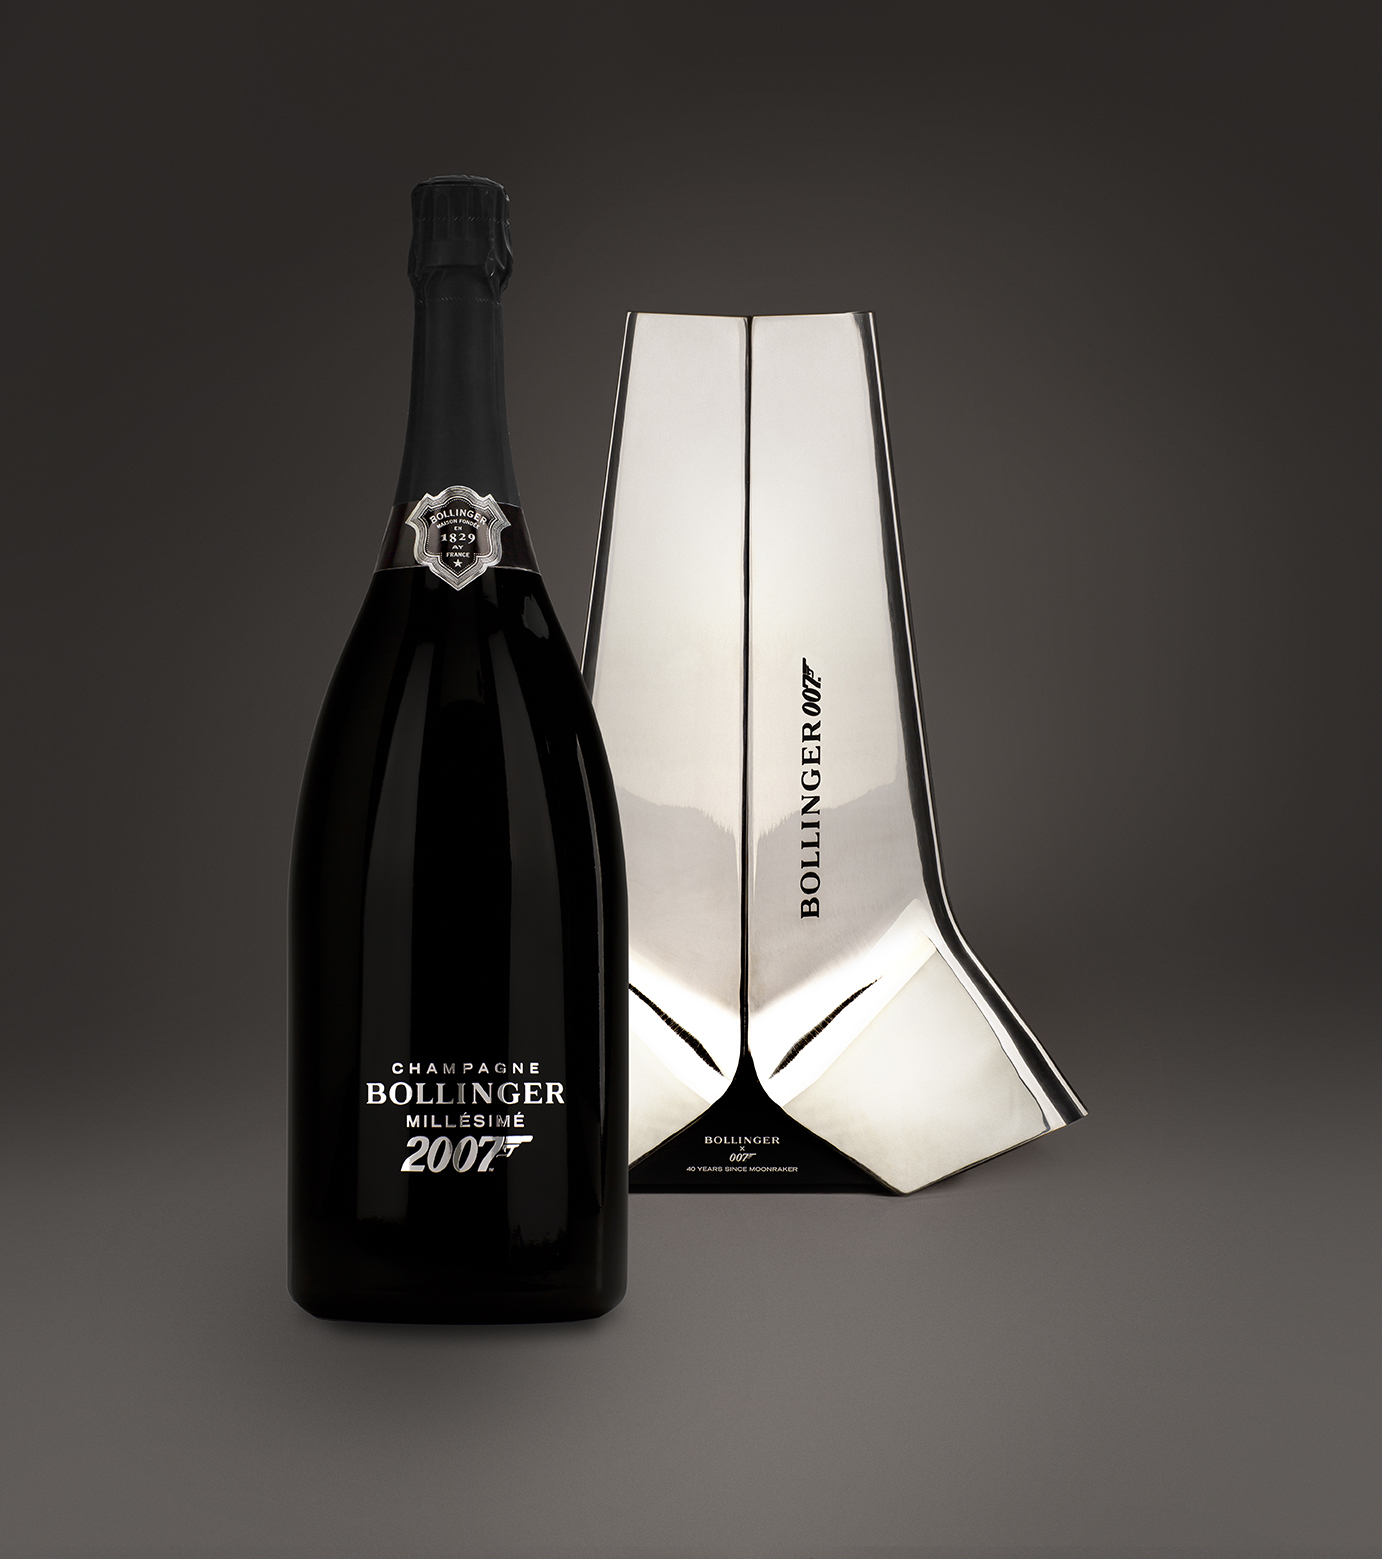 BOLLINGER_Moonraker-007_DESIGN-PRODUIT_Spiritueux-Champagne-James-Bond-Crystalerie-Saint-Louis-Anniversaire-40-ansPLANET-DESIGN-PARIS-Eric-Berthes_02.jpg